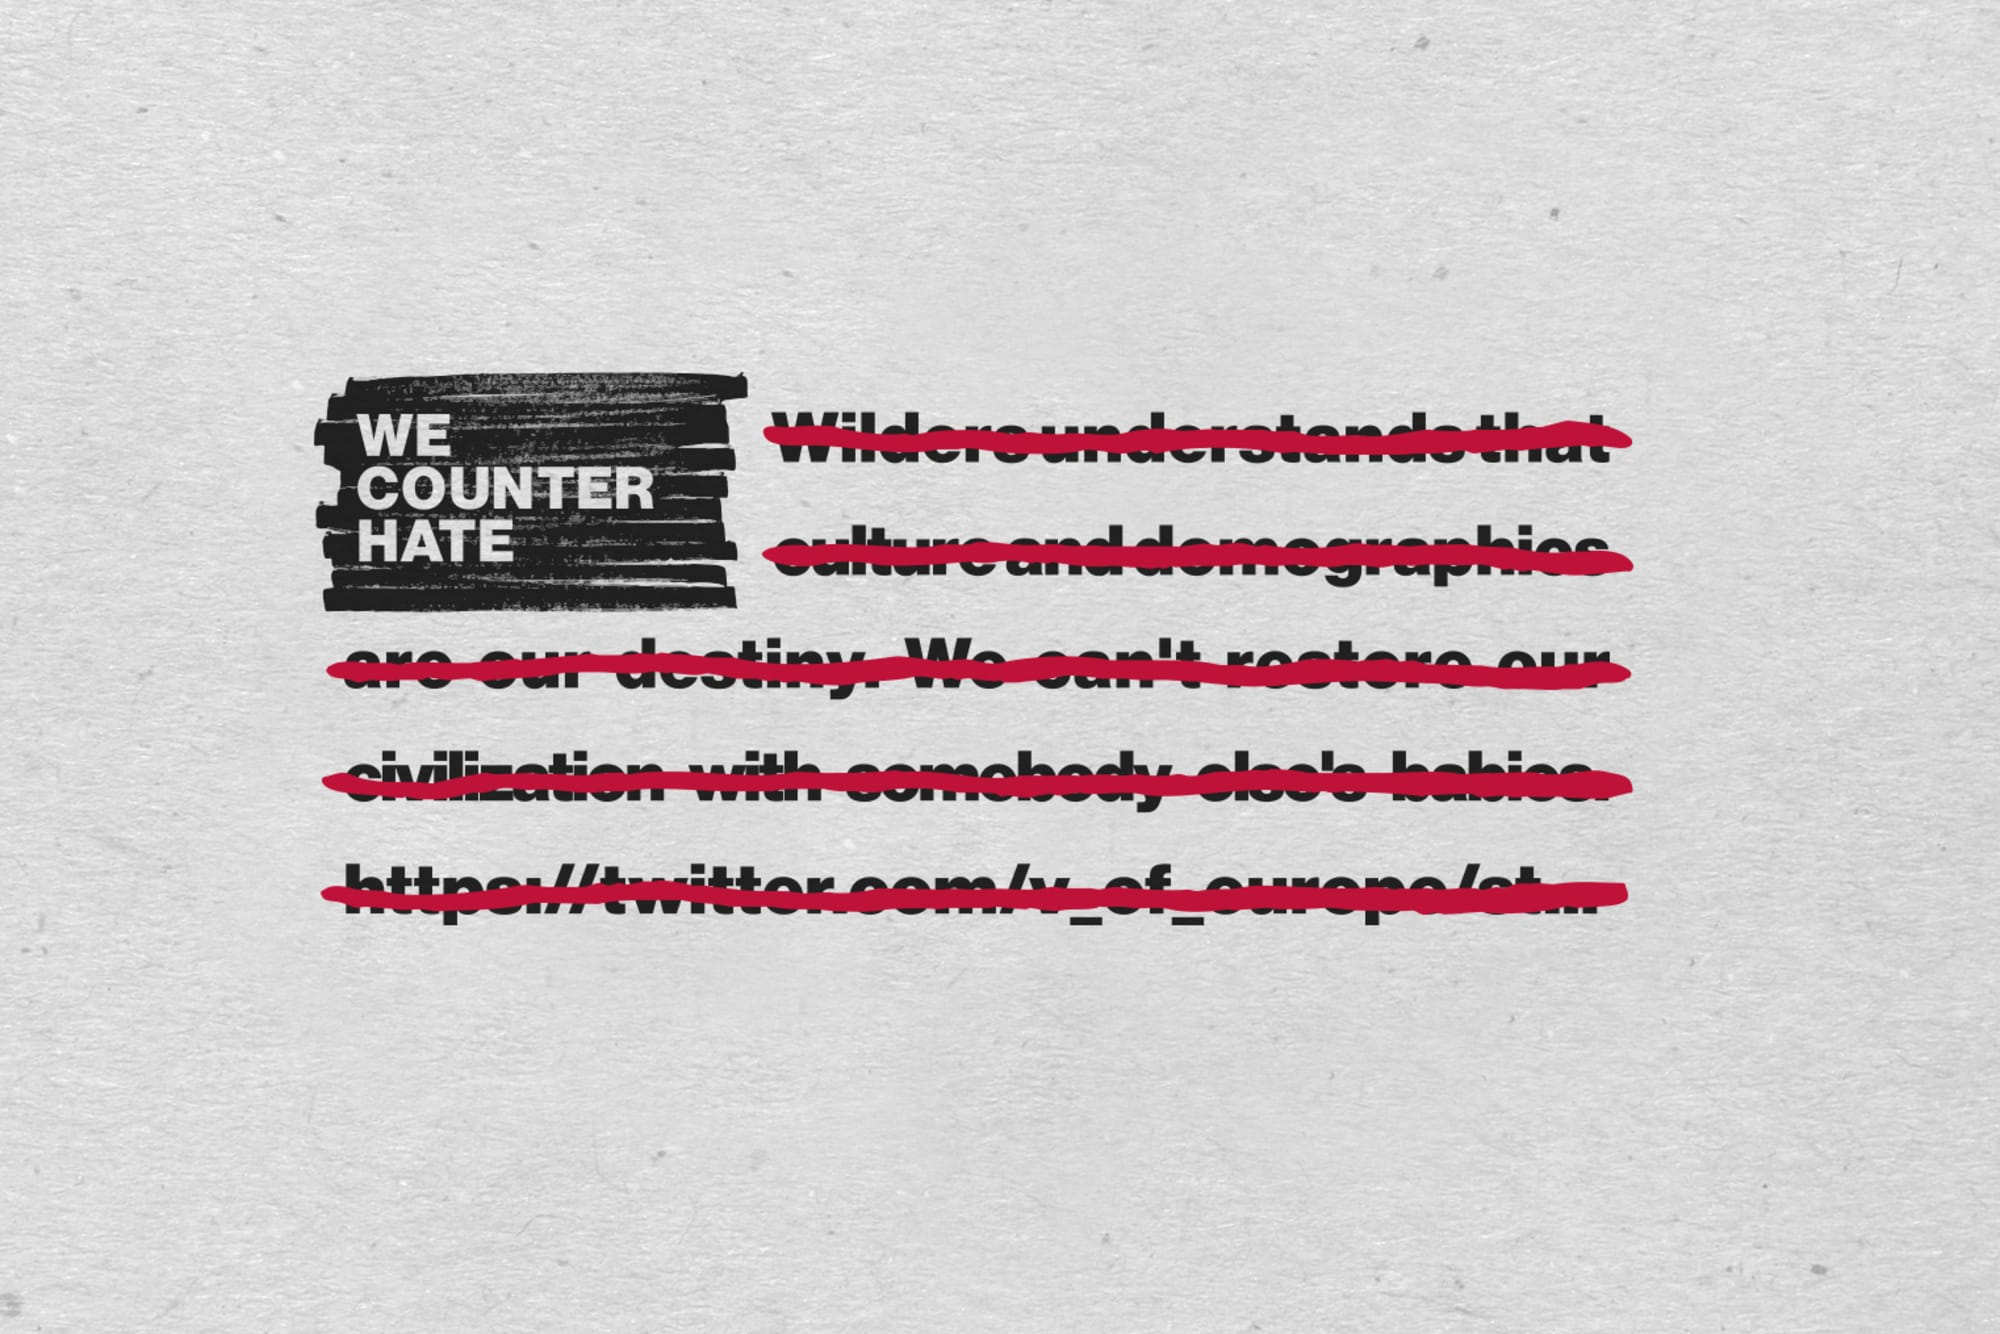 We Counter Hate